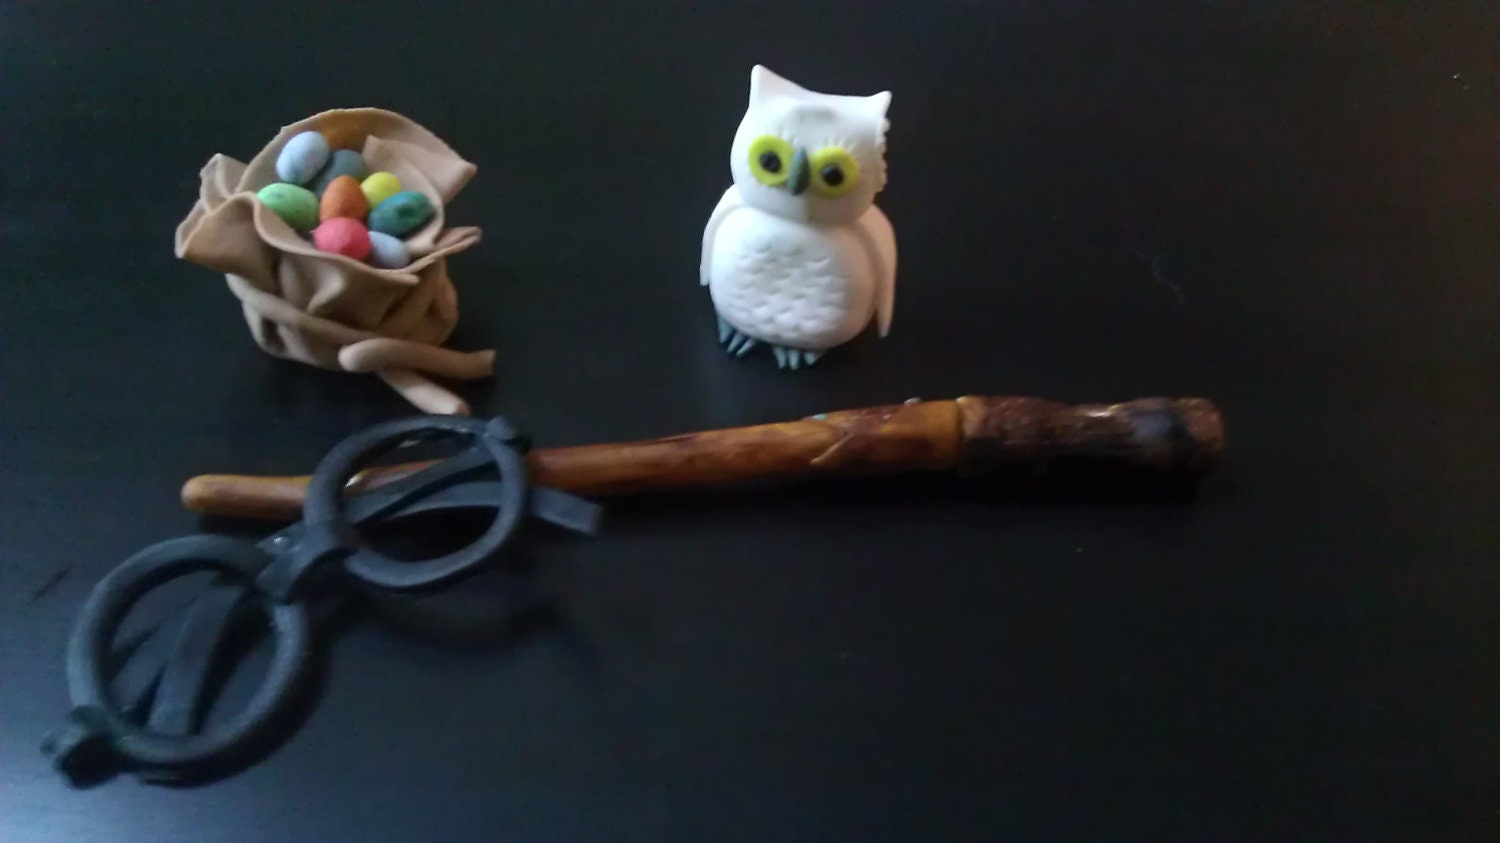 harry potter cake topper harry potter theme cake topper by jhosweets on etsy 4731